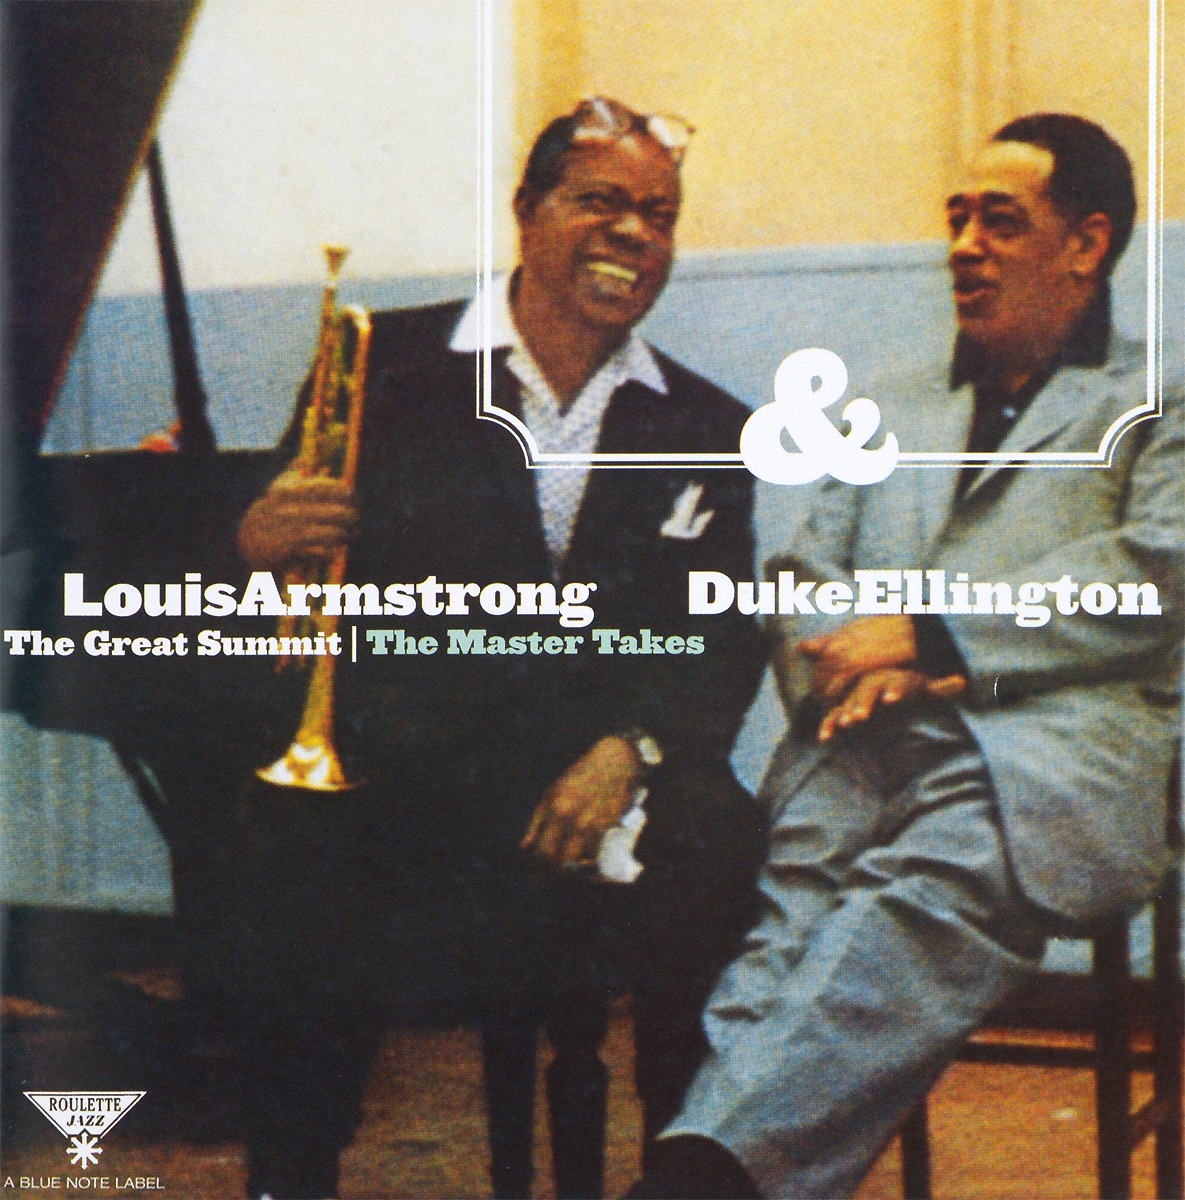 Louis Armstrong & Duke Ellington. The Great Summit. The Master Takes